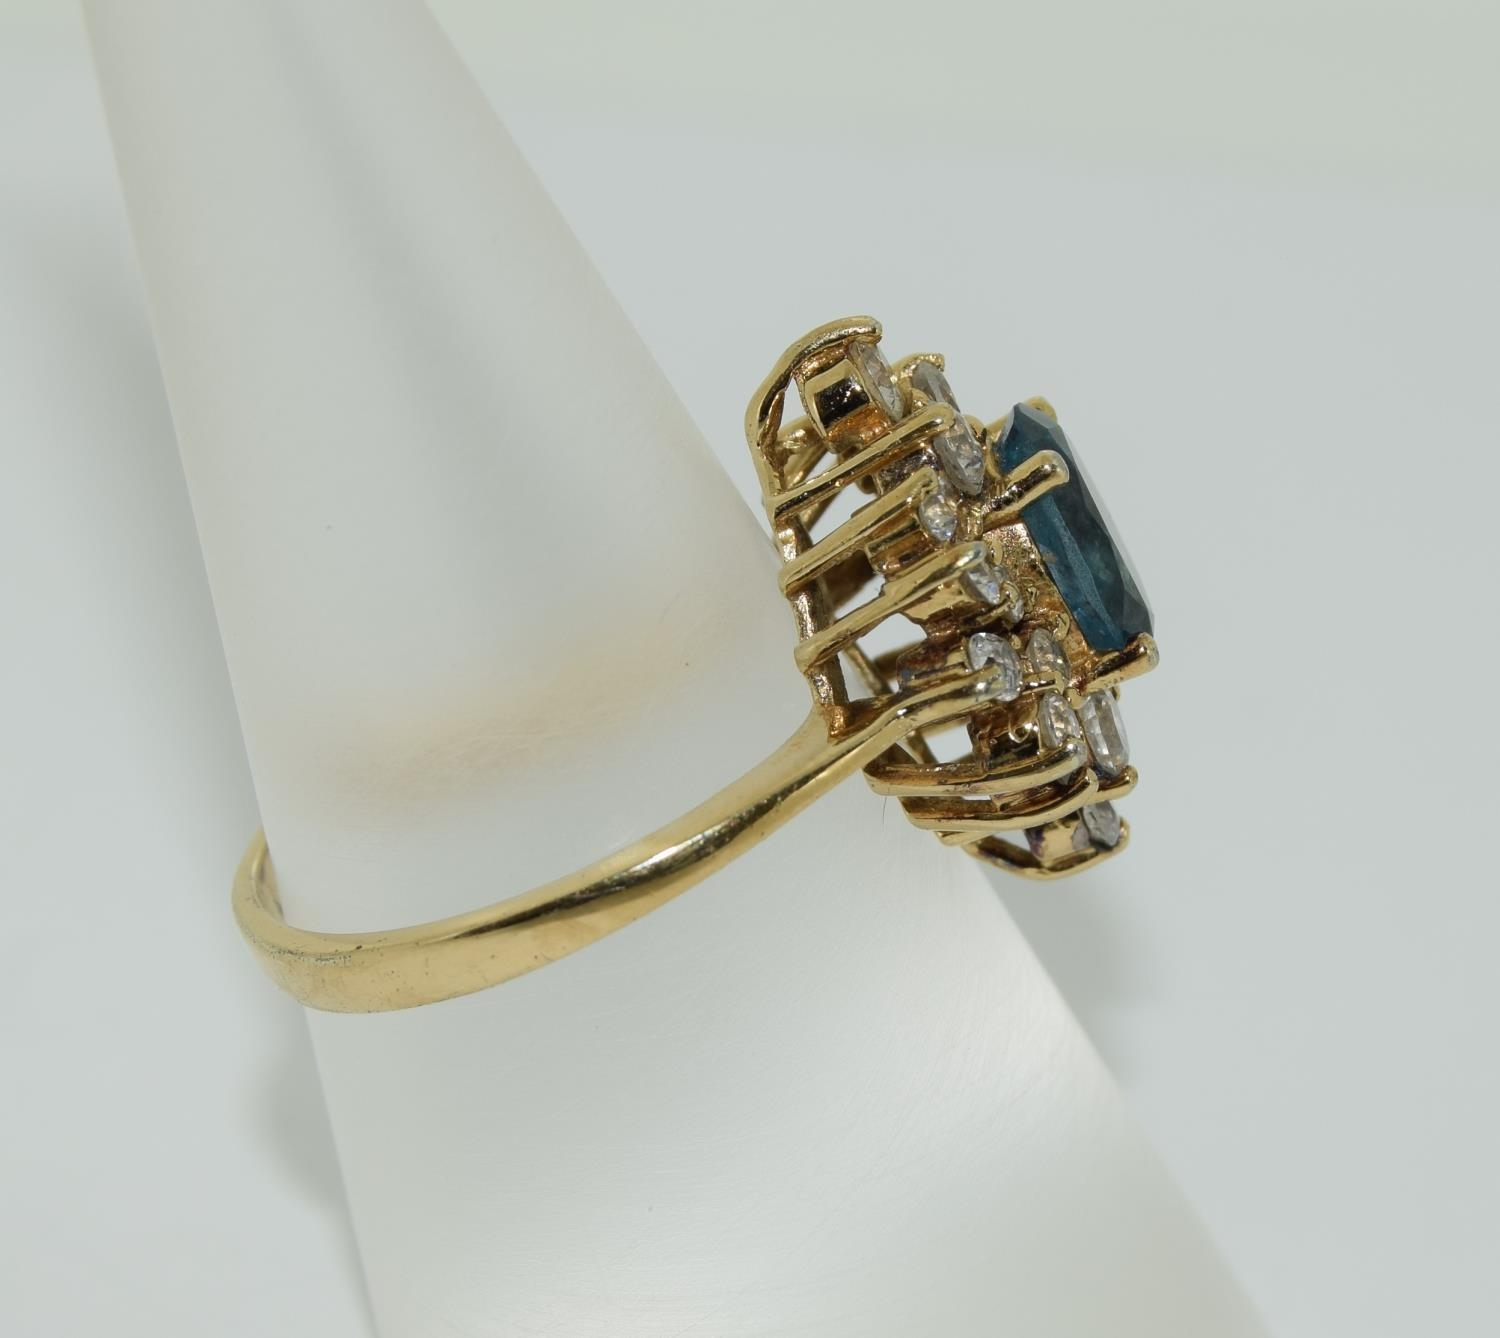 Blue Topaz gold on silver cluster ring, Size N 1/2. - Image 2 of 3